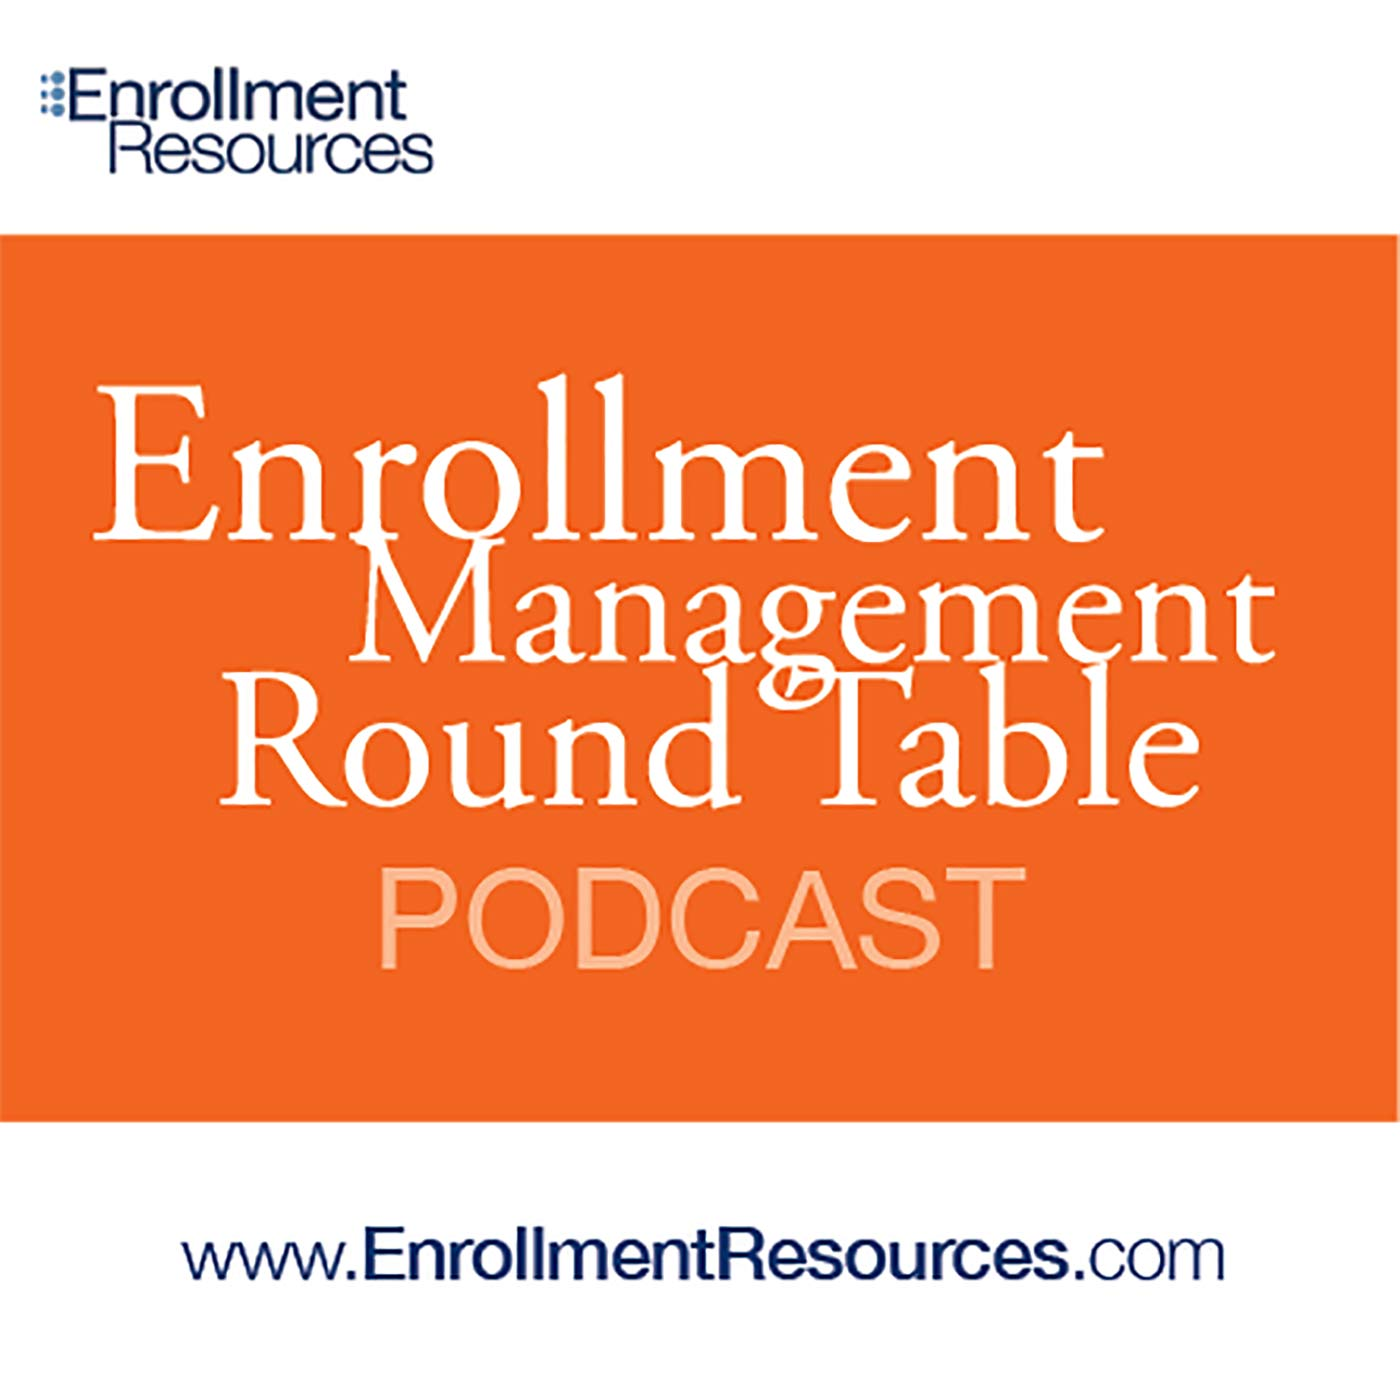 Enrollment Resources Roundtable Podcast